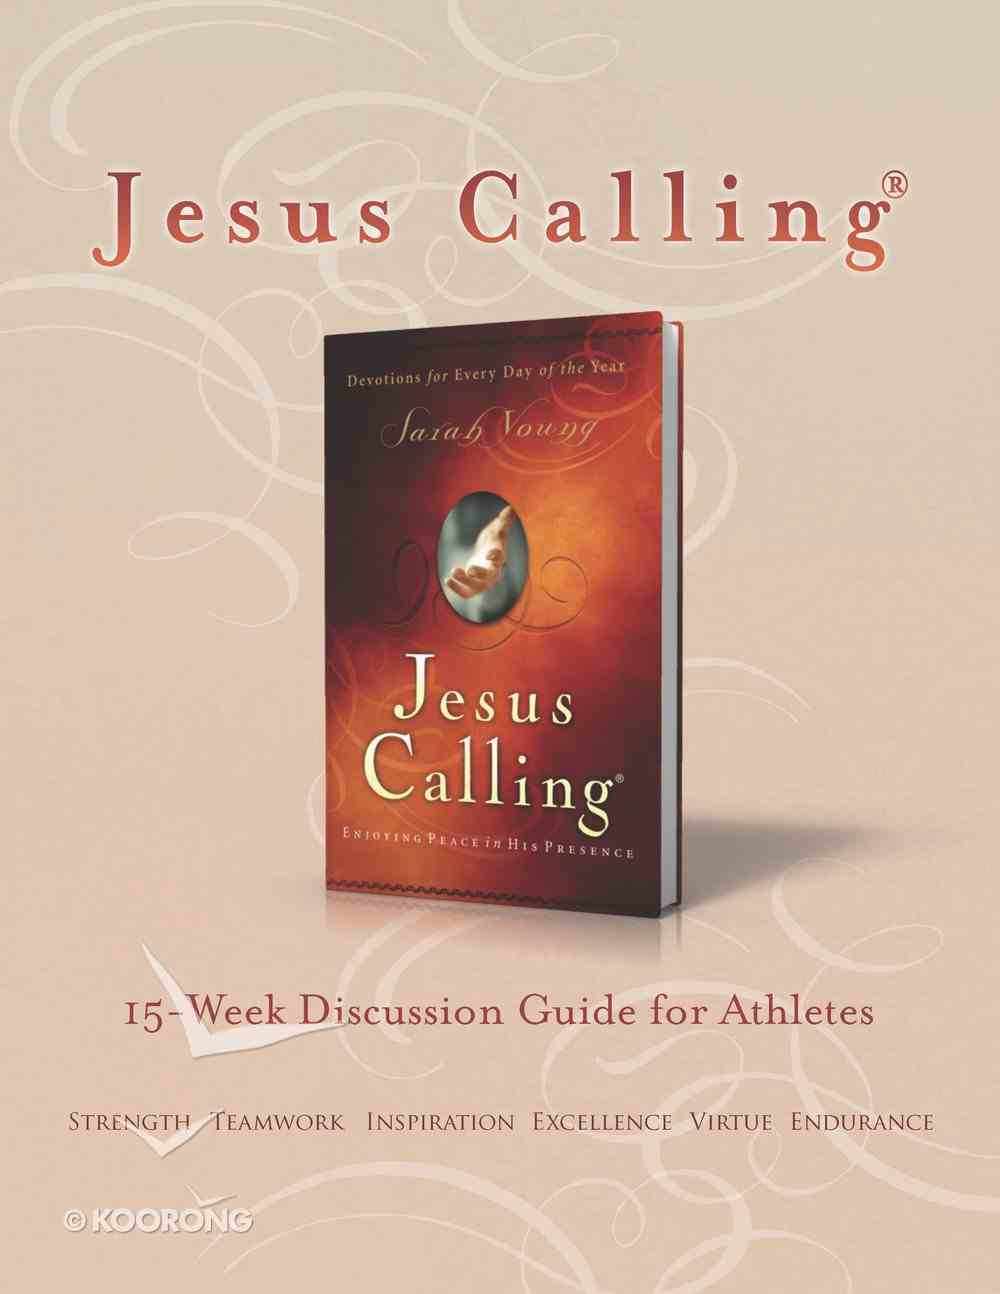 Jesus Calling Book Club Discussion Guide For Athletes eBook